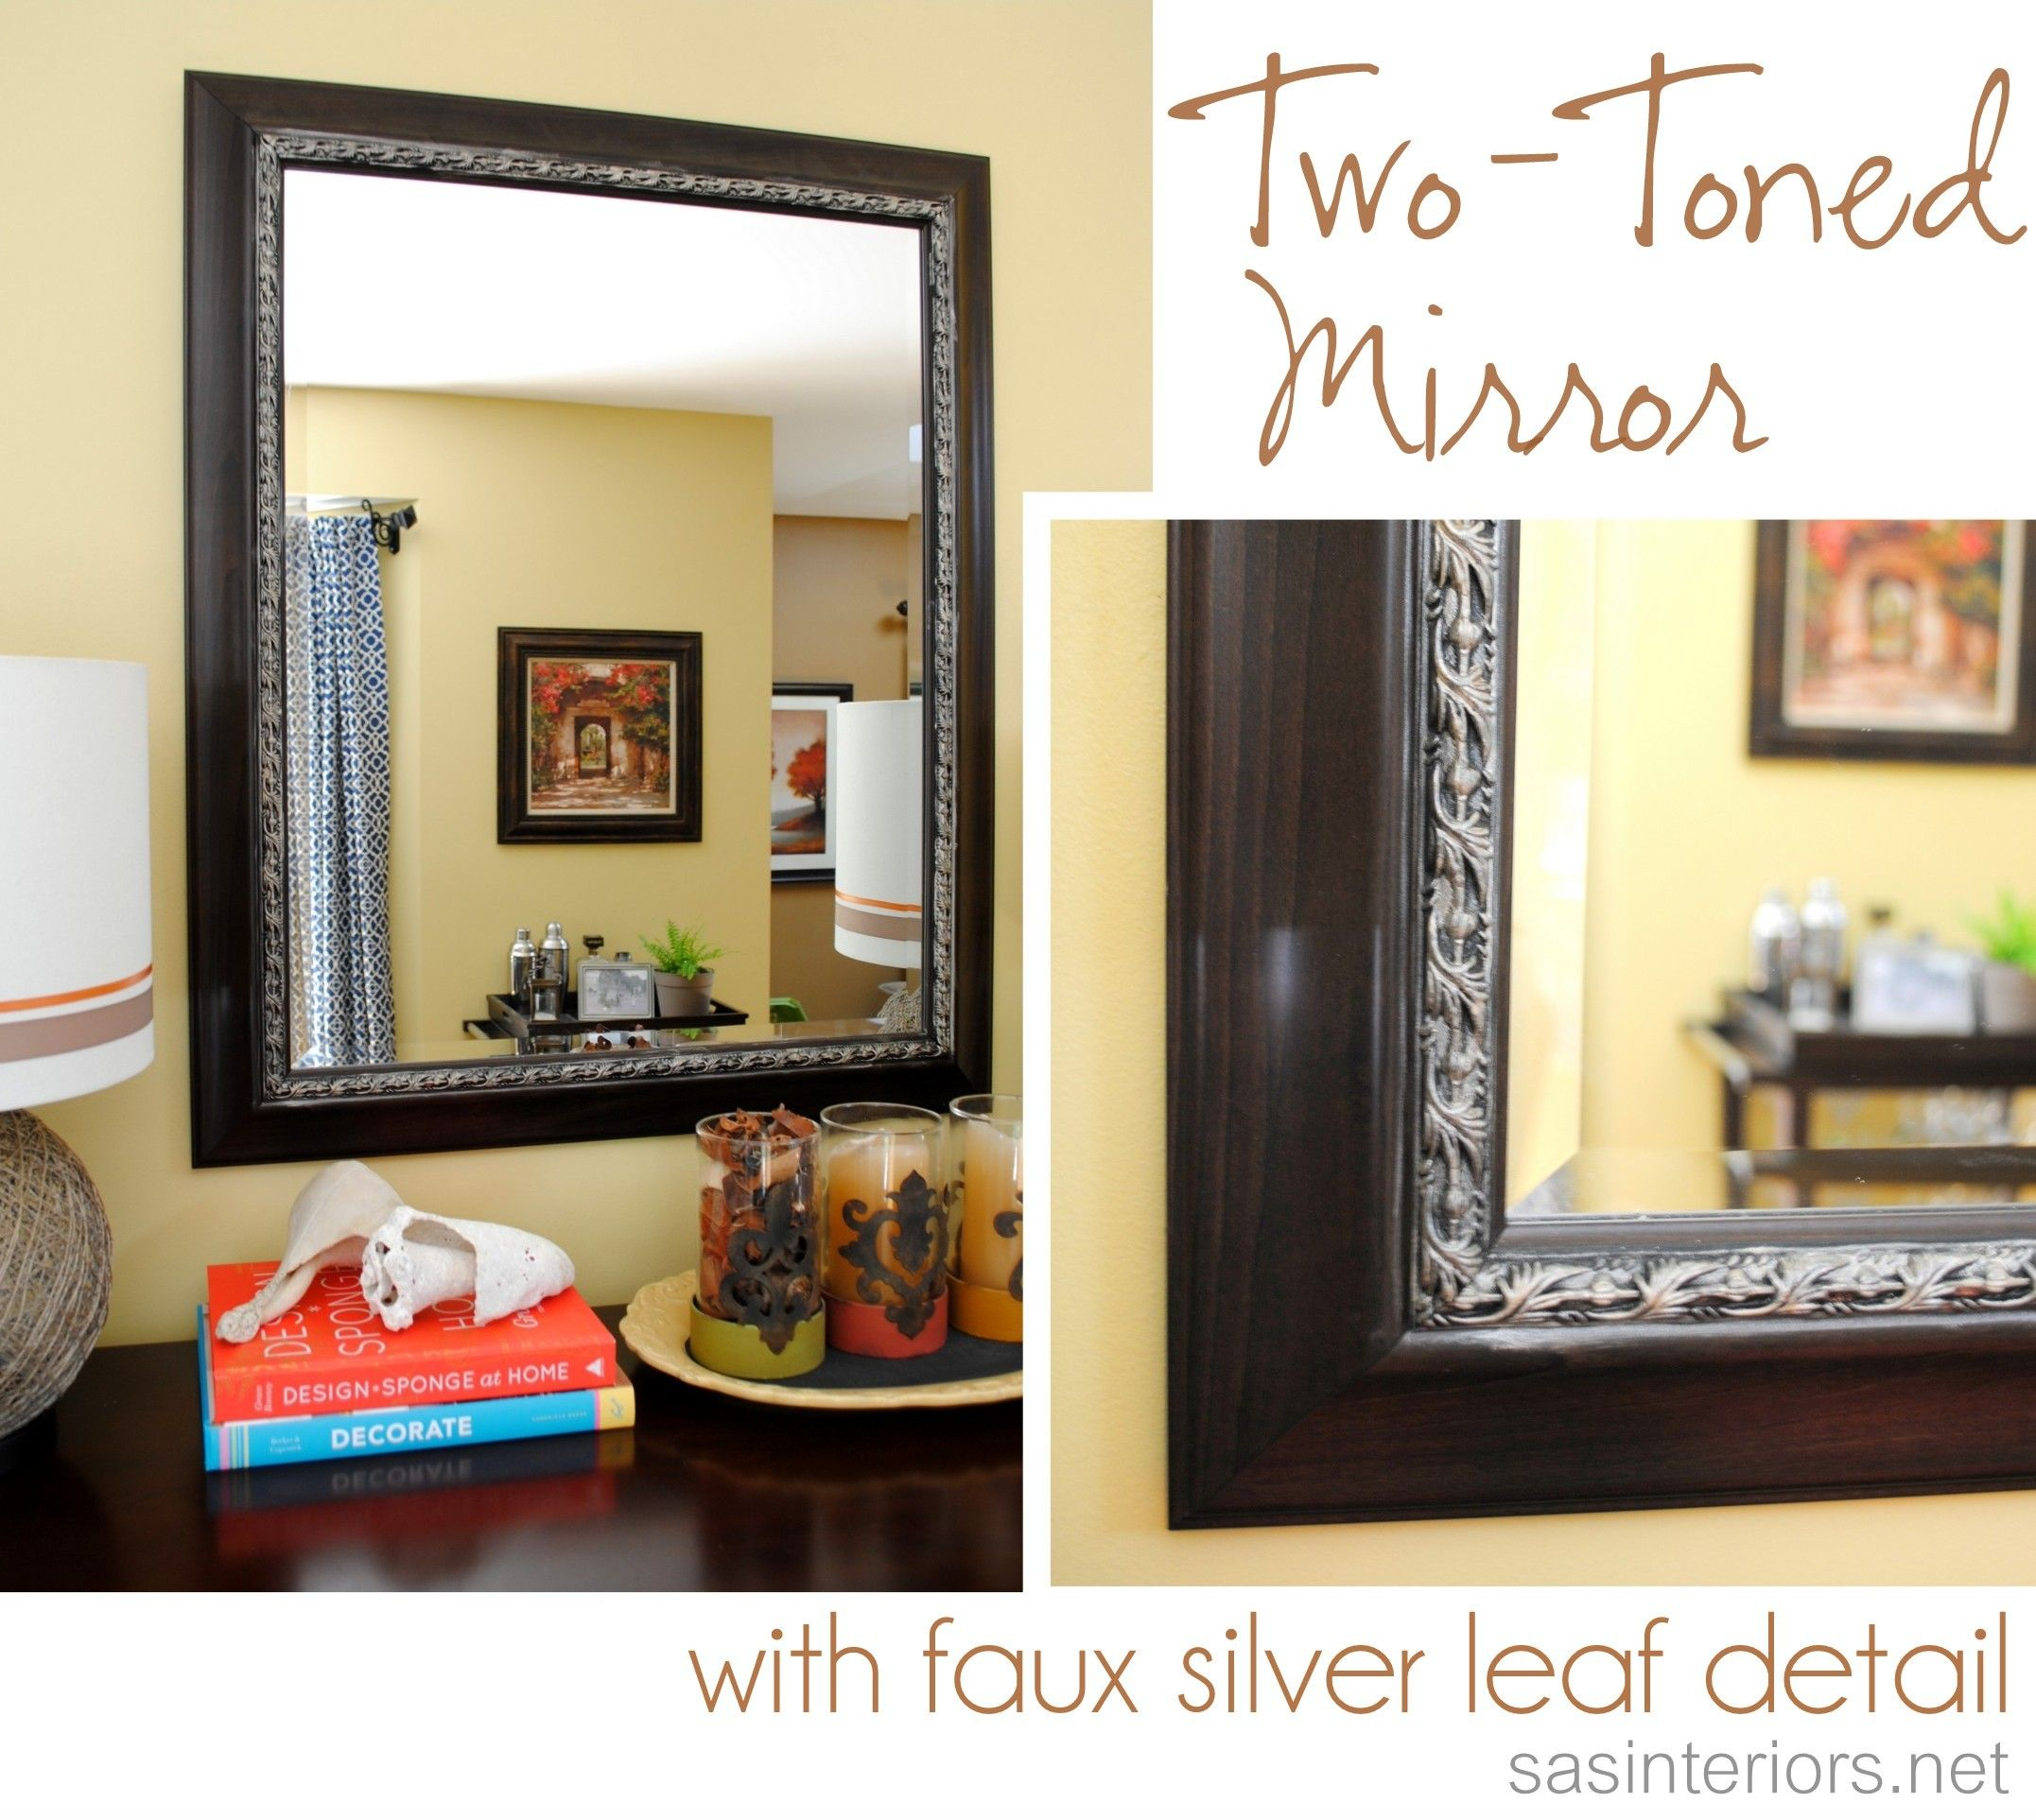 Two Toned Mirror With Faux Silver Leaf Using A Technique With